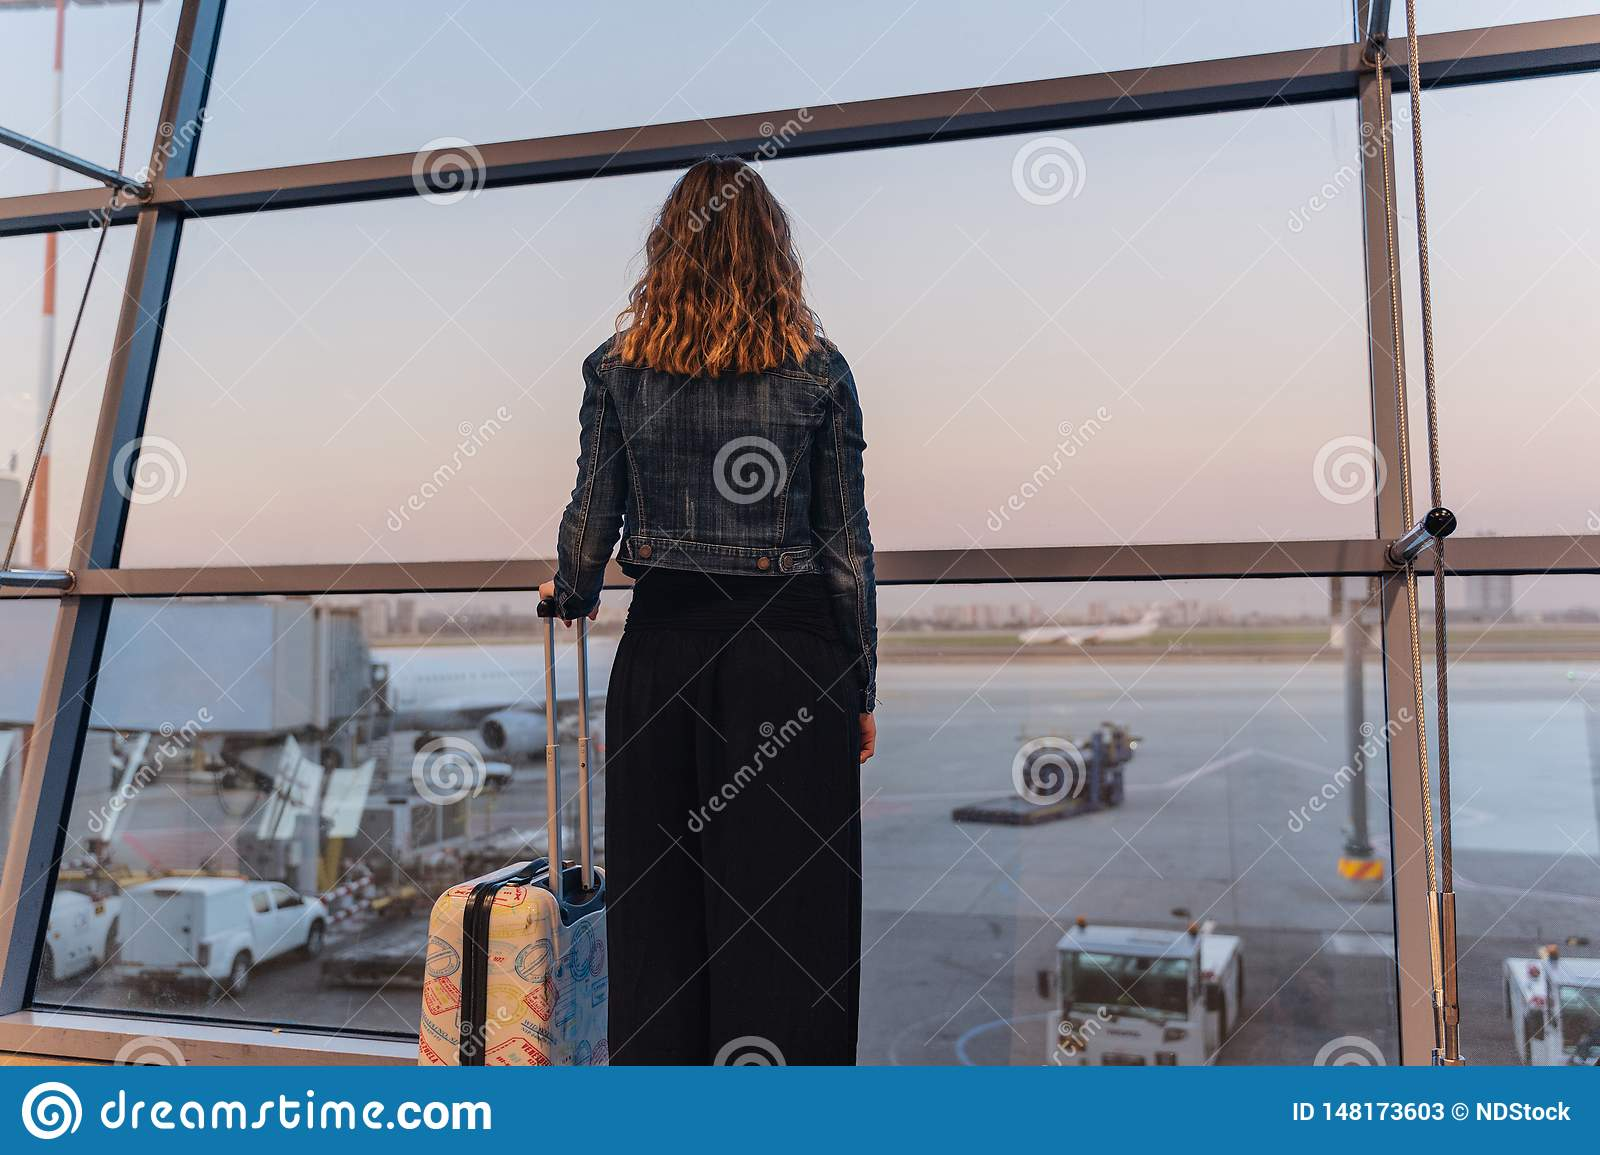 Young woman in a airport looking at the planes before departure